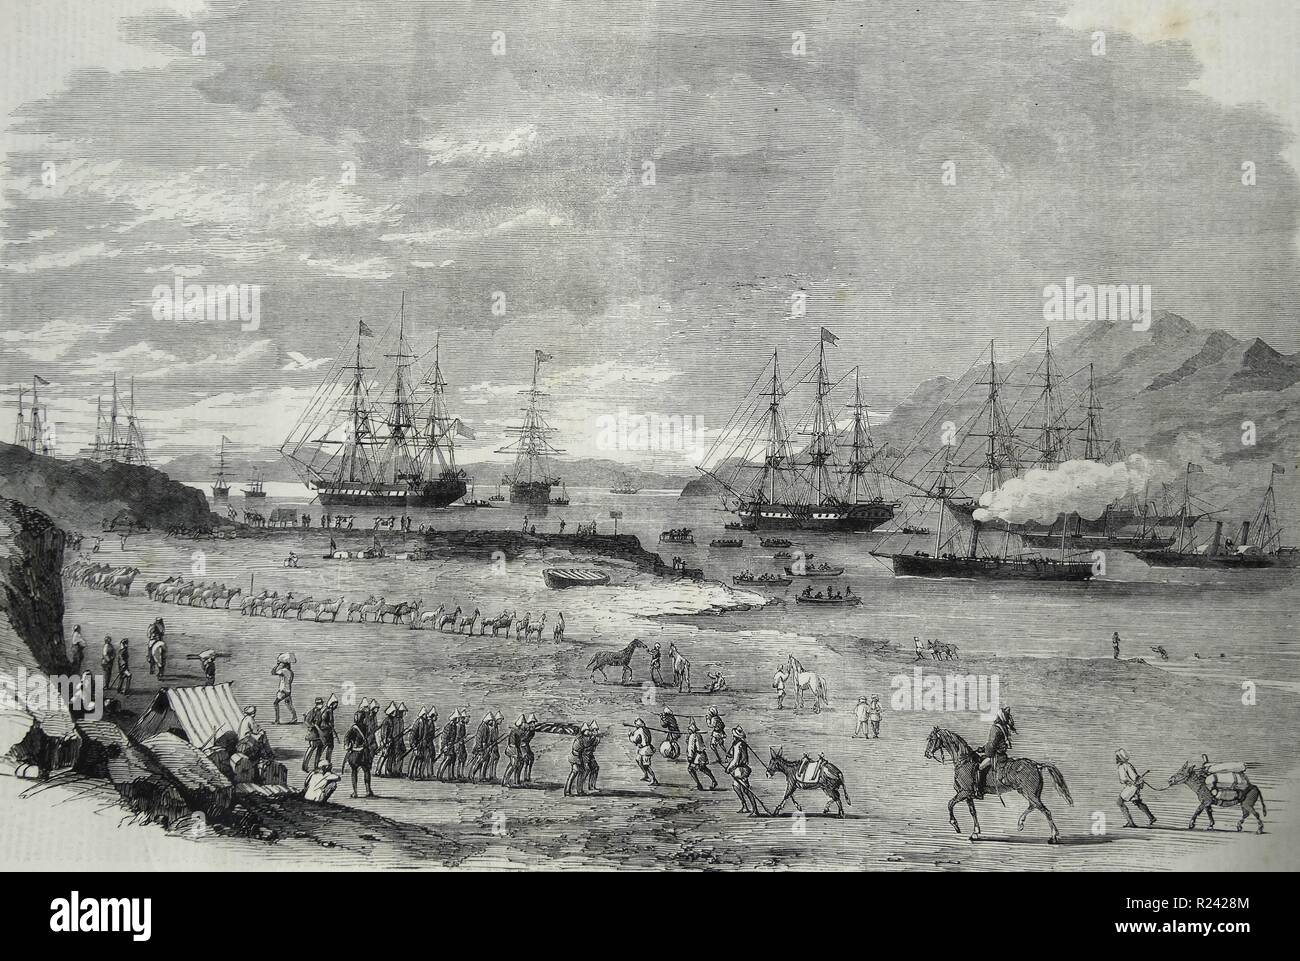 Engraving depicting the departure of troops from Hockley Pier for the Peiho. Dated 1860 - Stock Image